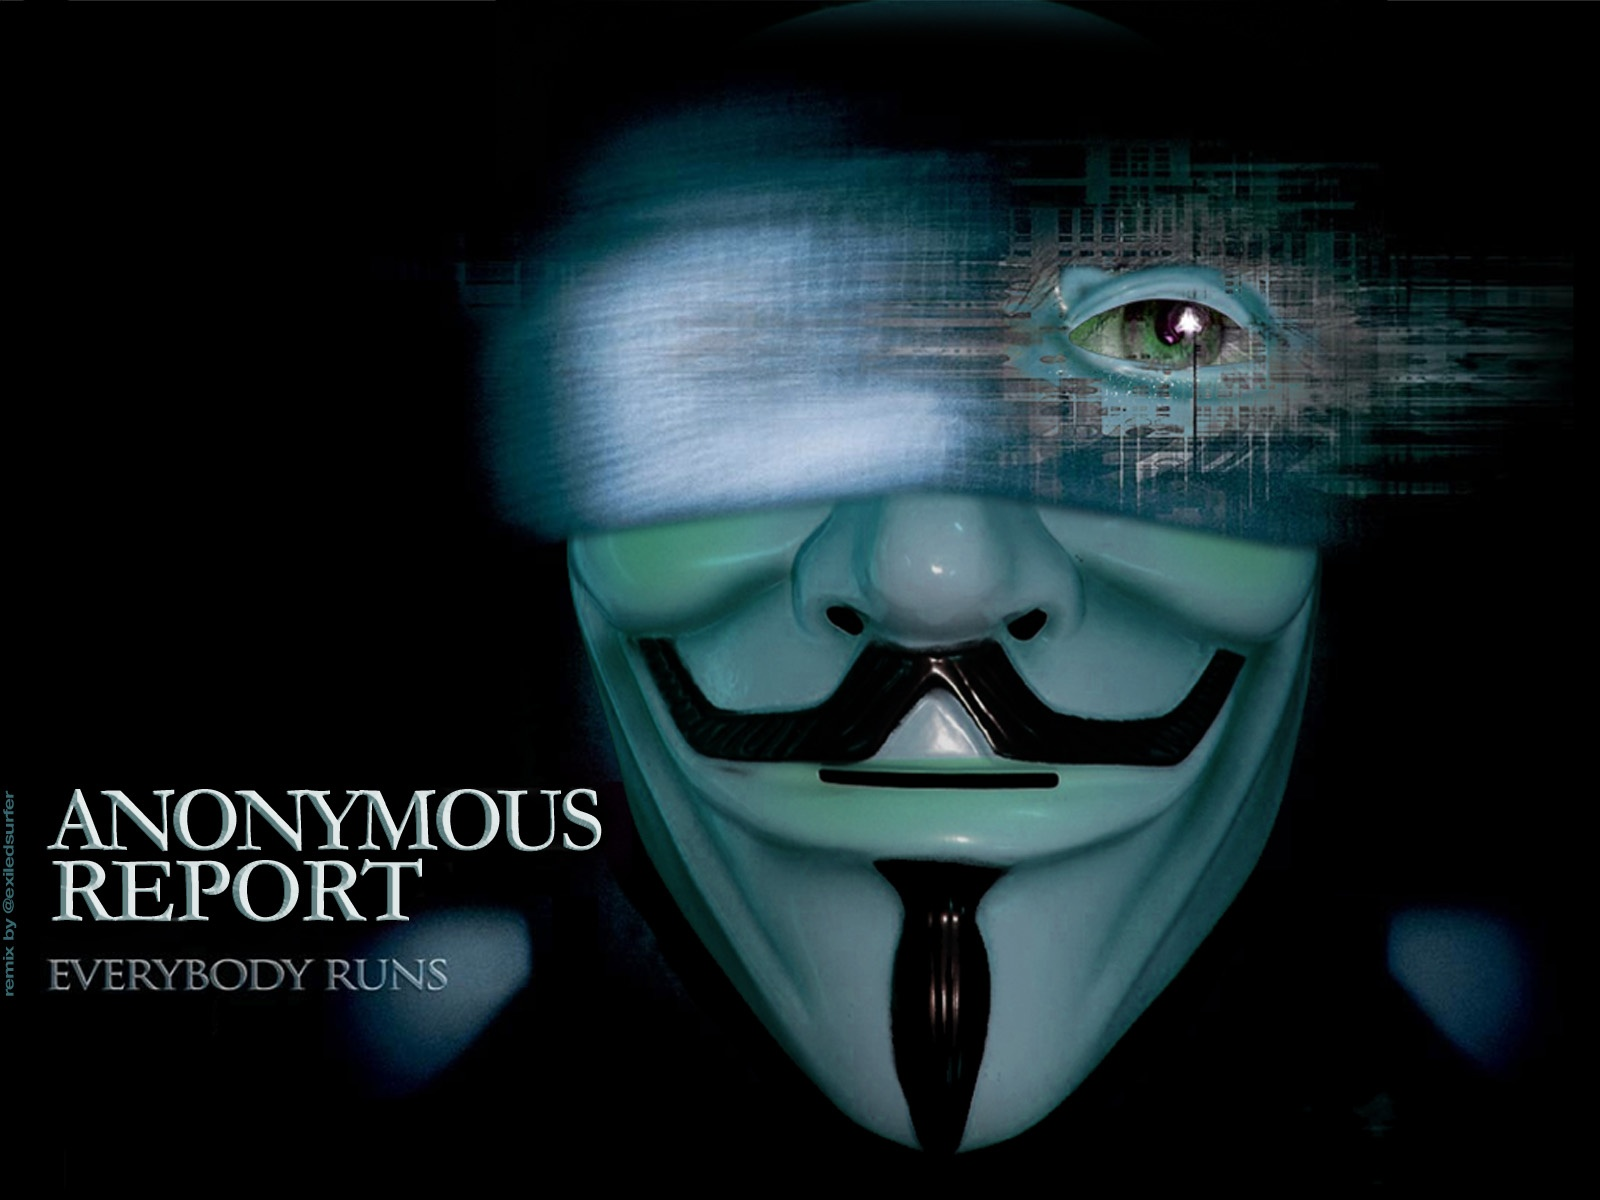 Anonymous Report - Upcoming Movie Wallpapers - 1600x1200 ...